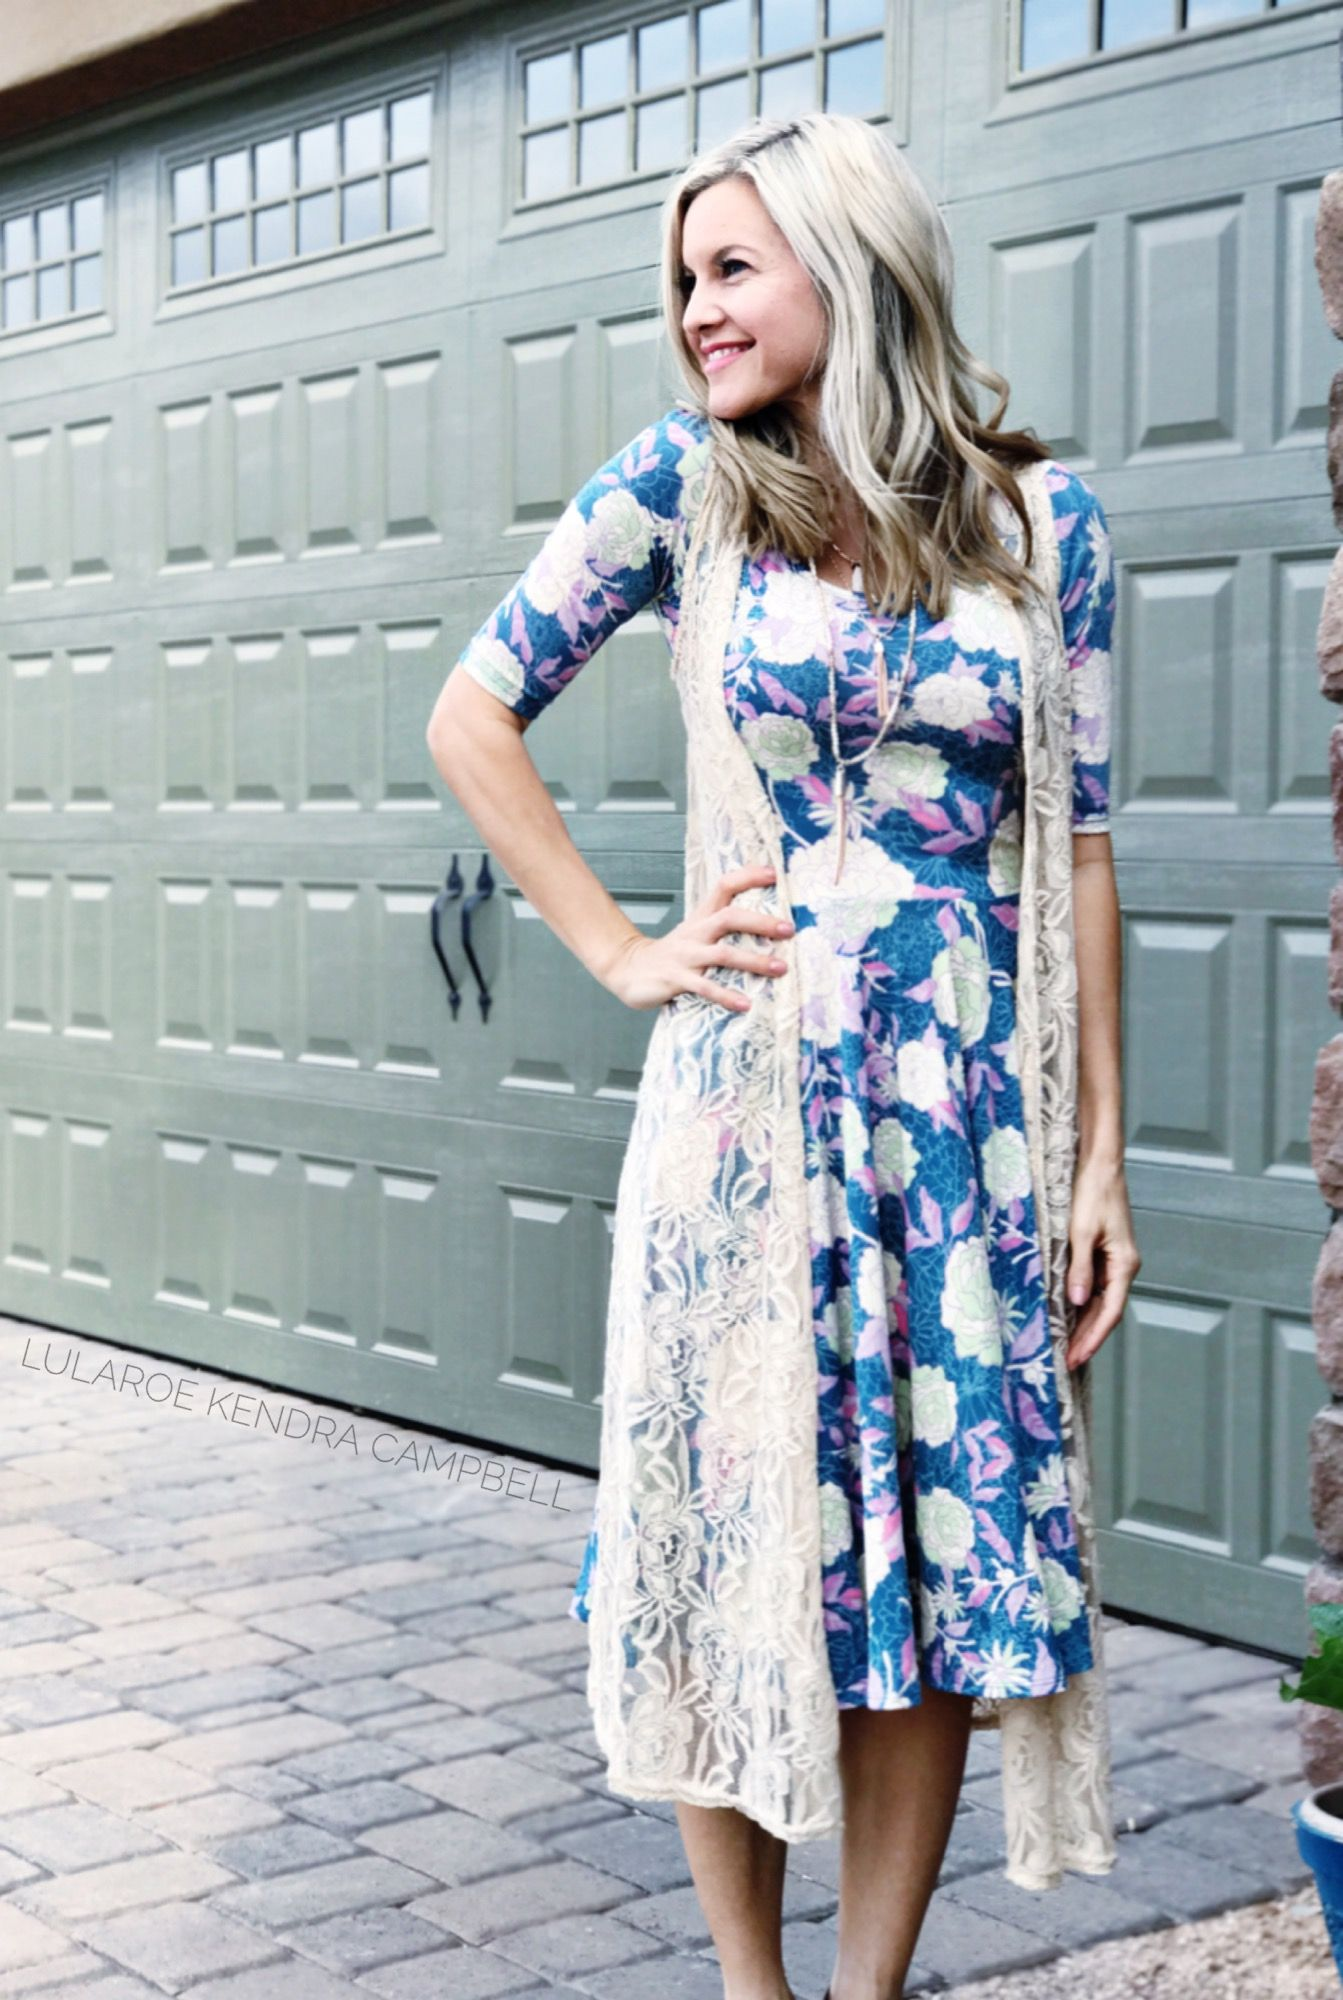 a488f6025d1 Gorgeous floral LuLaRoe Nicole dress with a lace Joy vest. Click to shop  LuLaRoe and for more styling ideas and giveaways.